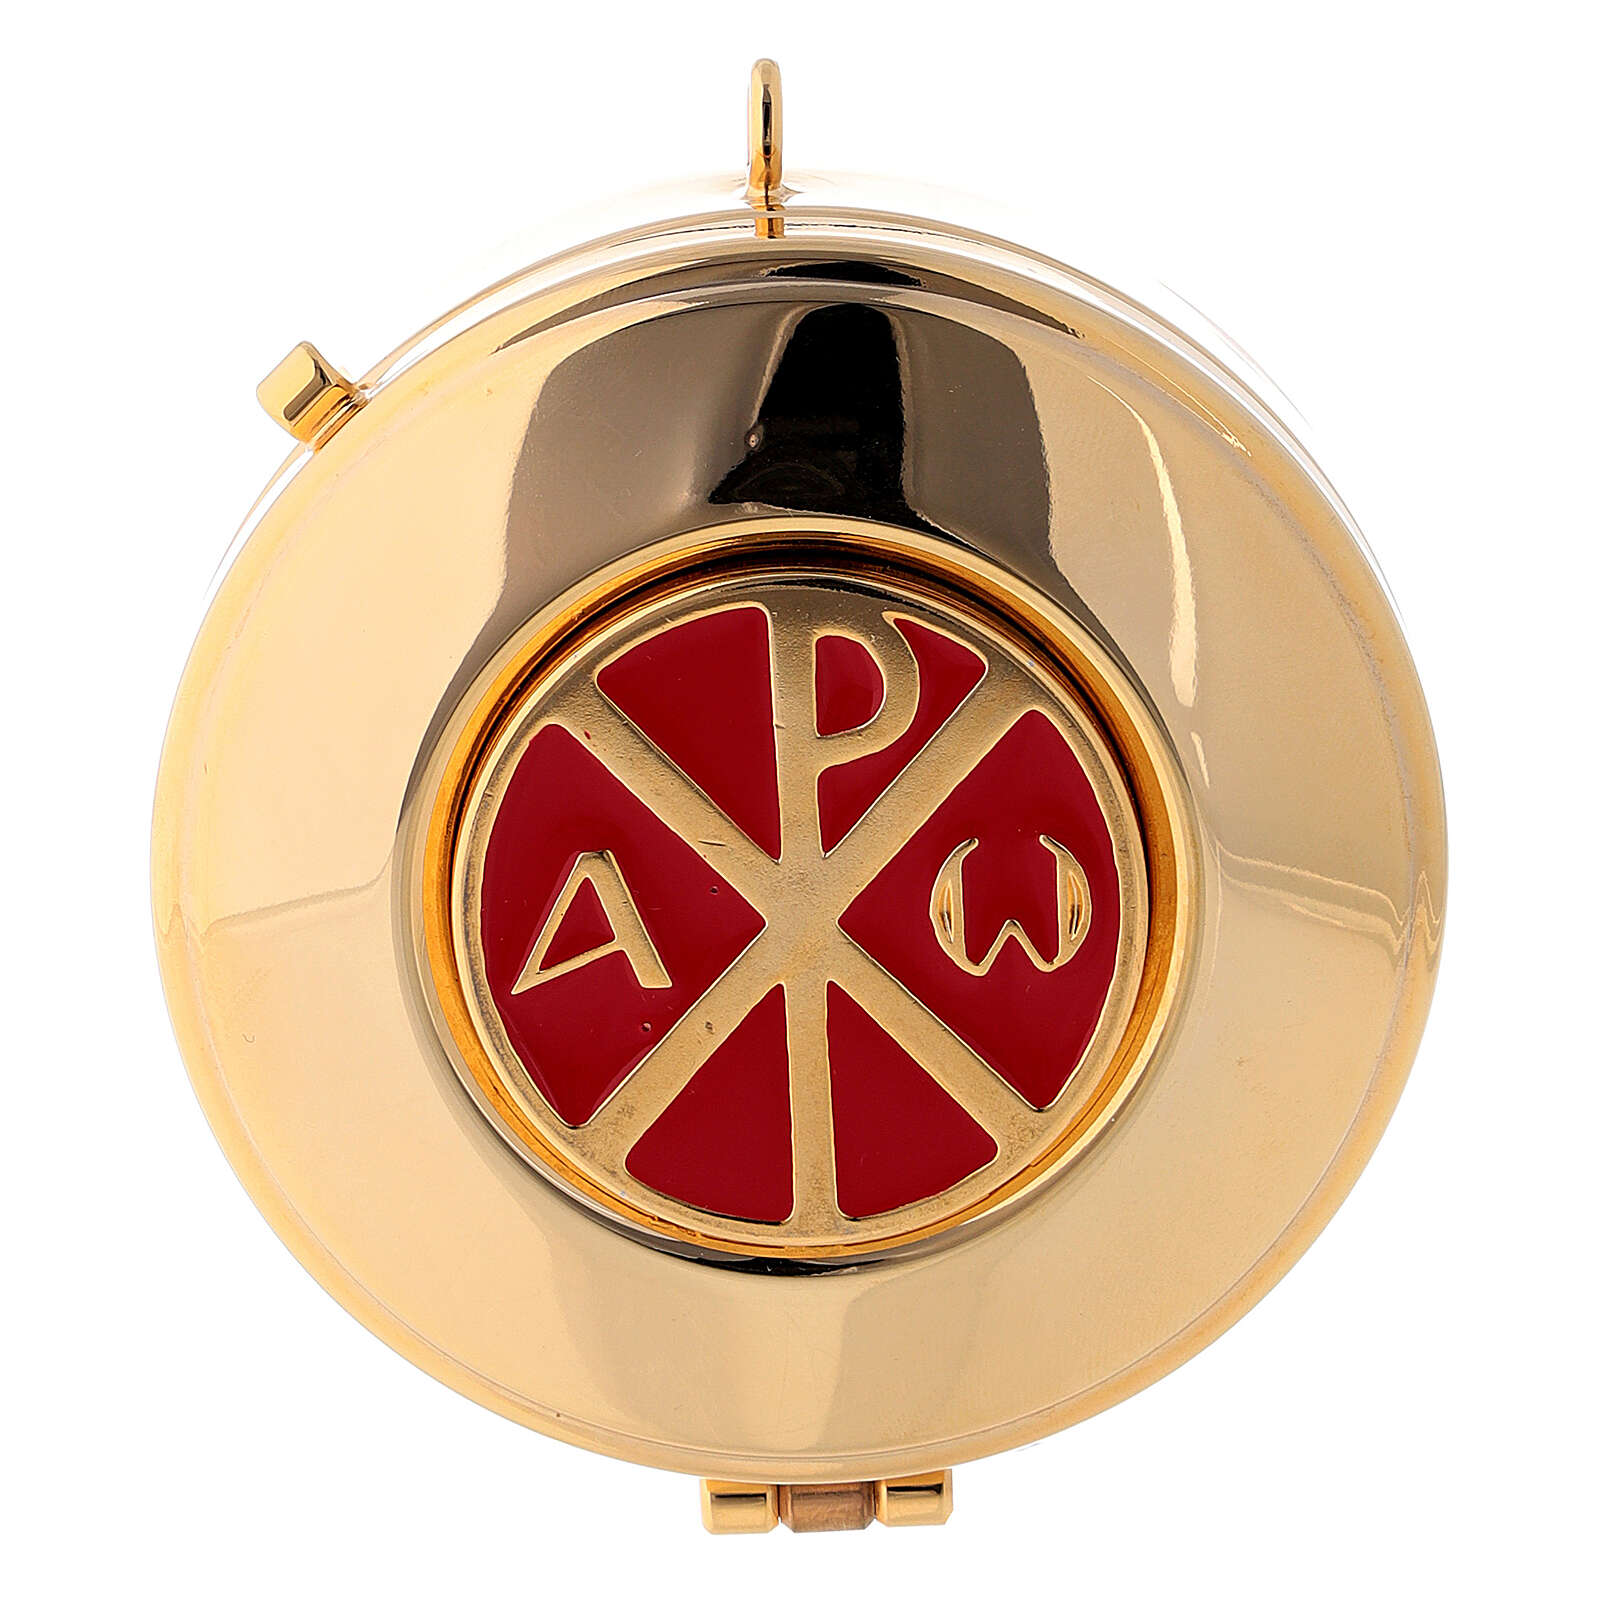 Chi-Rho pyx with enamelled plate and red Jacquard fabric burse 3